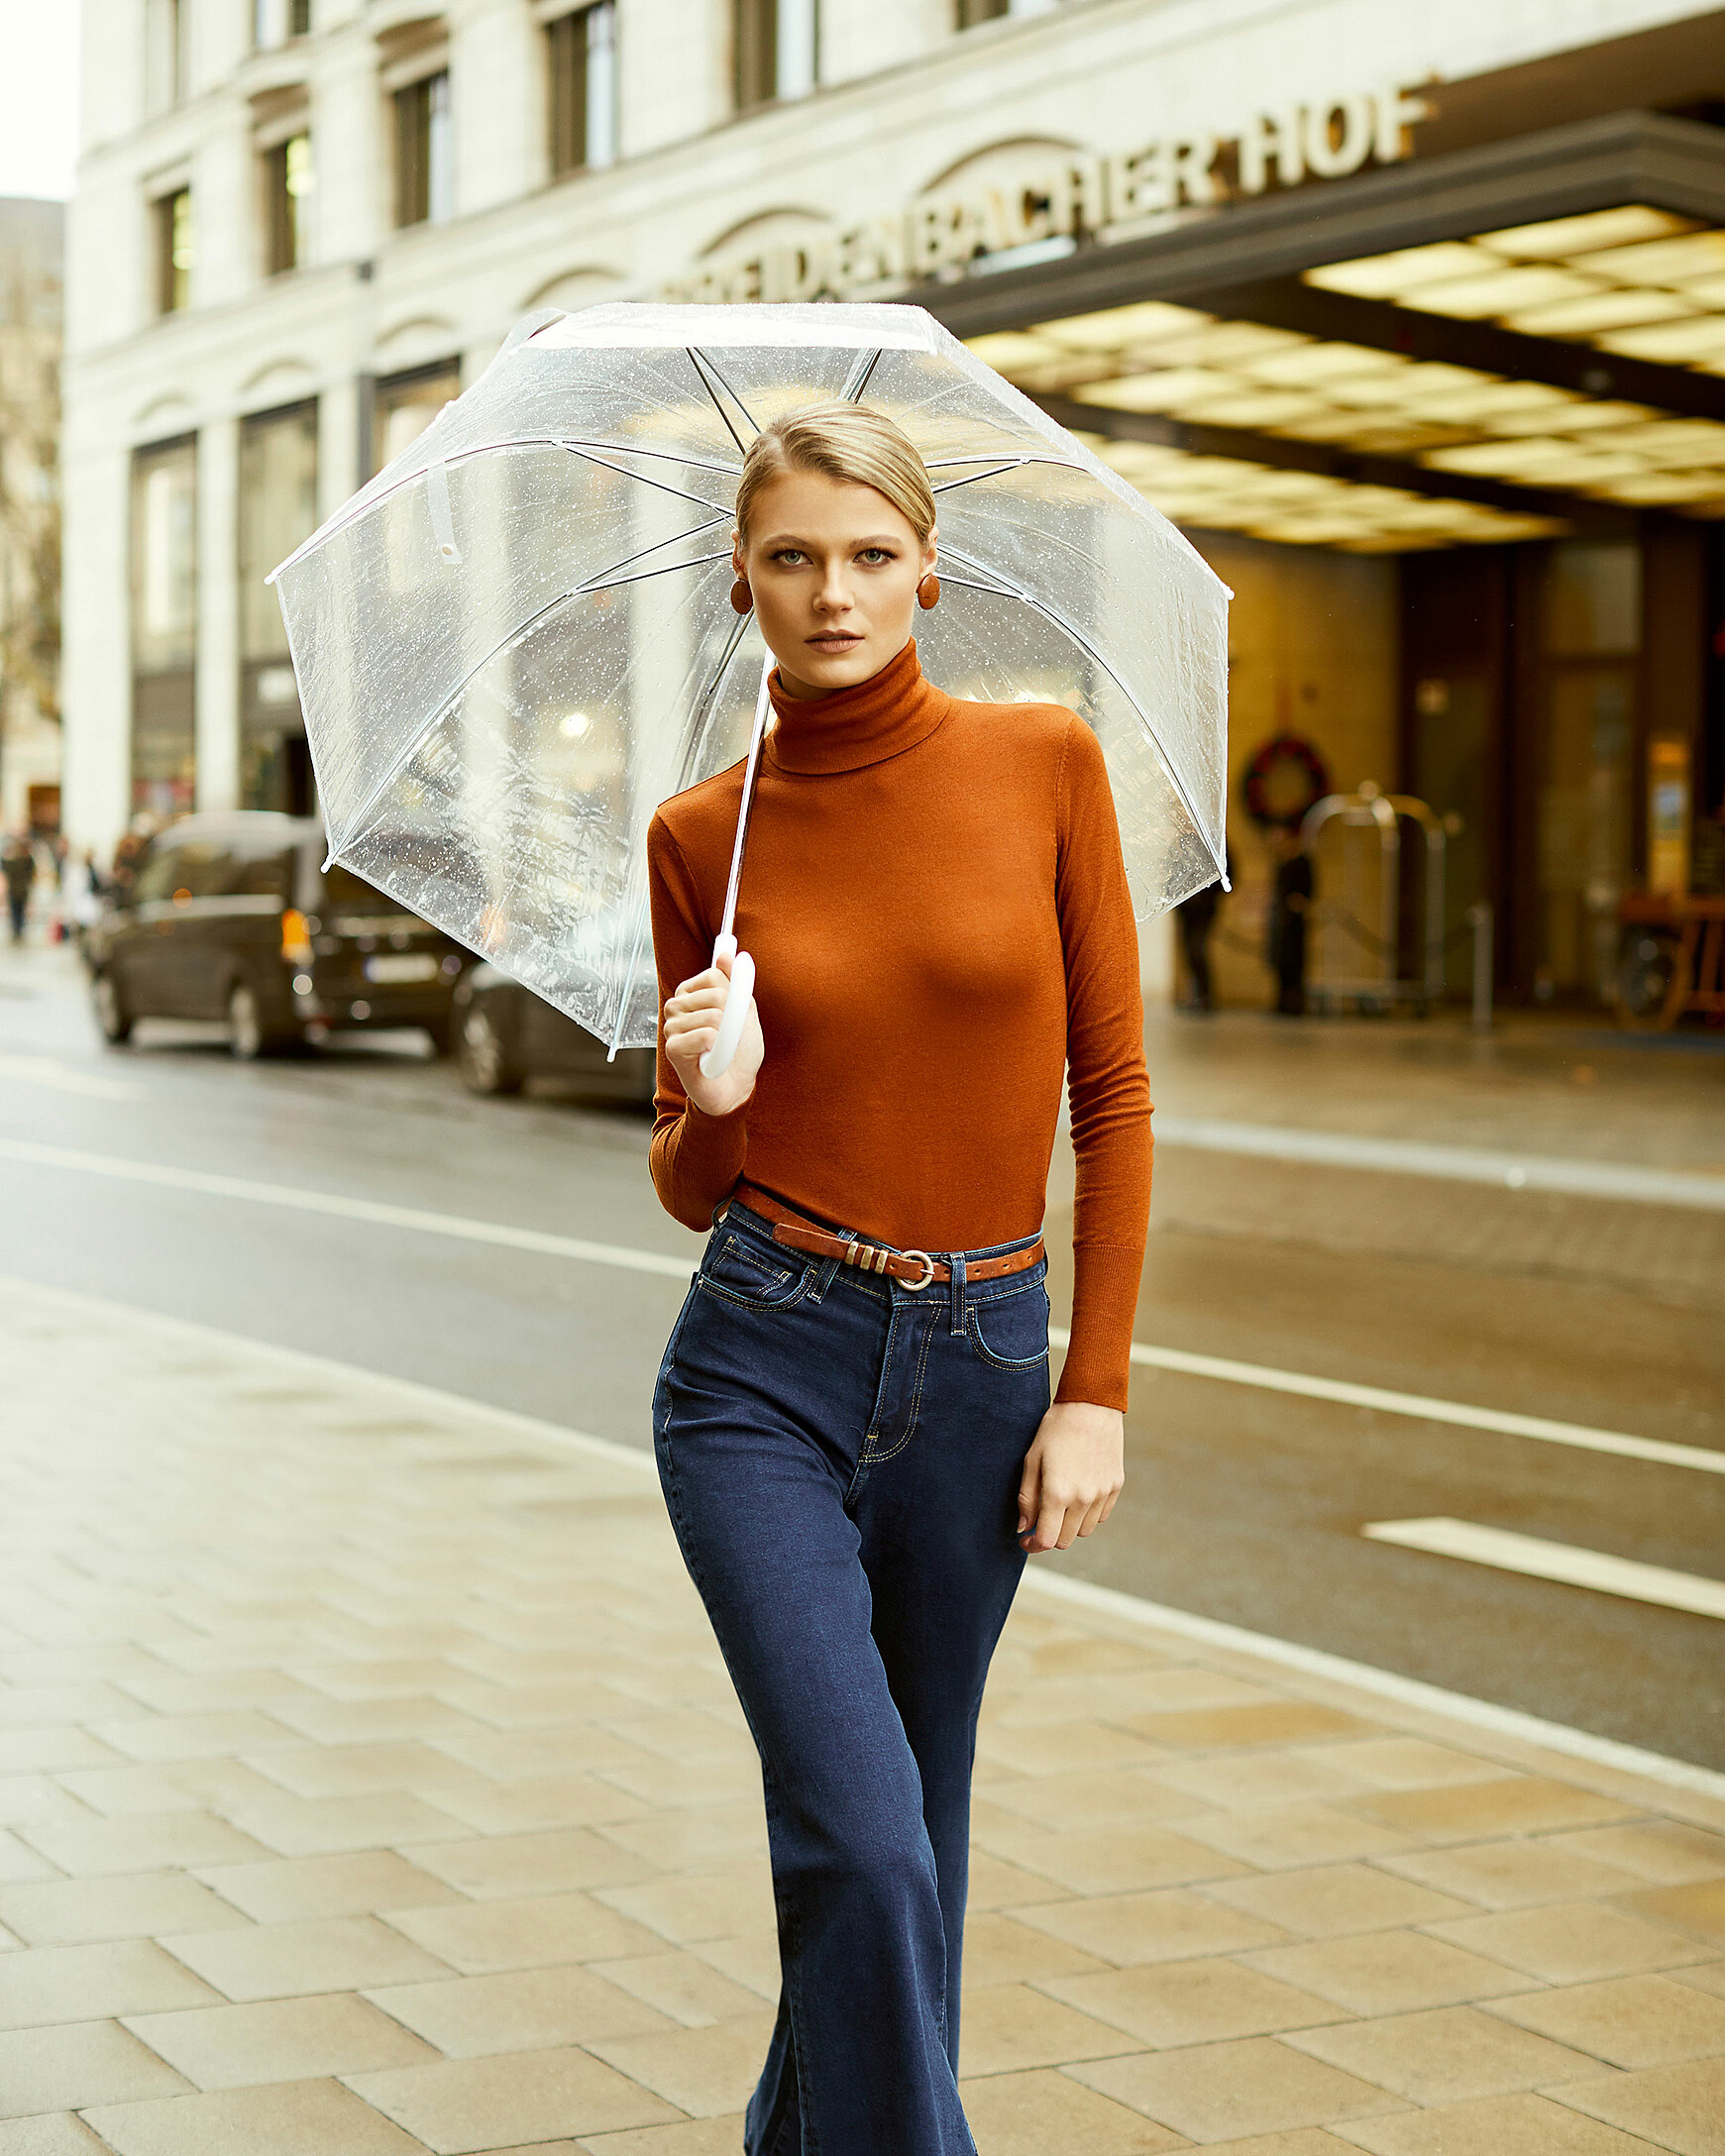 A blond hair model with a transparent umbrella and an orange pullover with a turtleneck with blue trousers in an outdoor location in front of a hotel with yellow lights